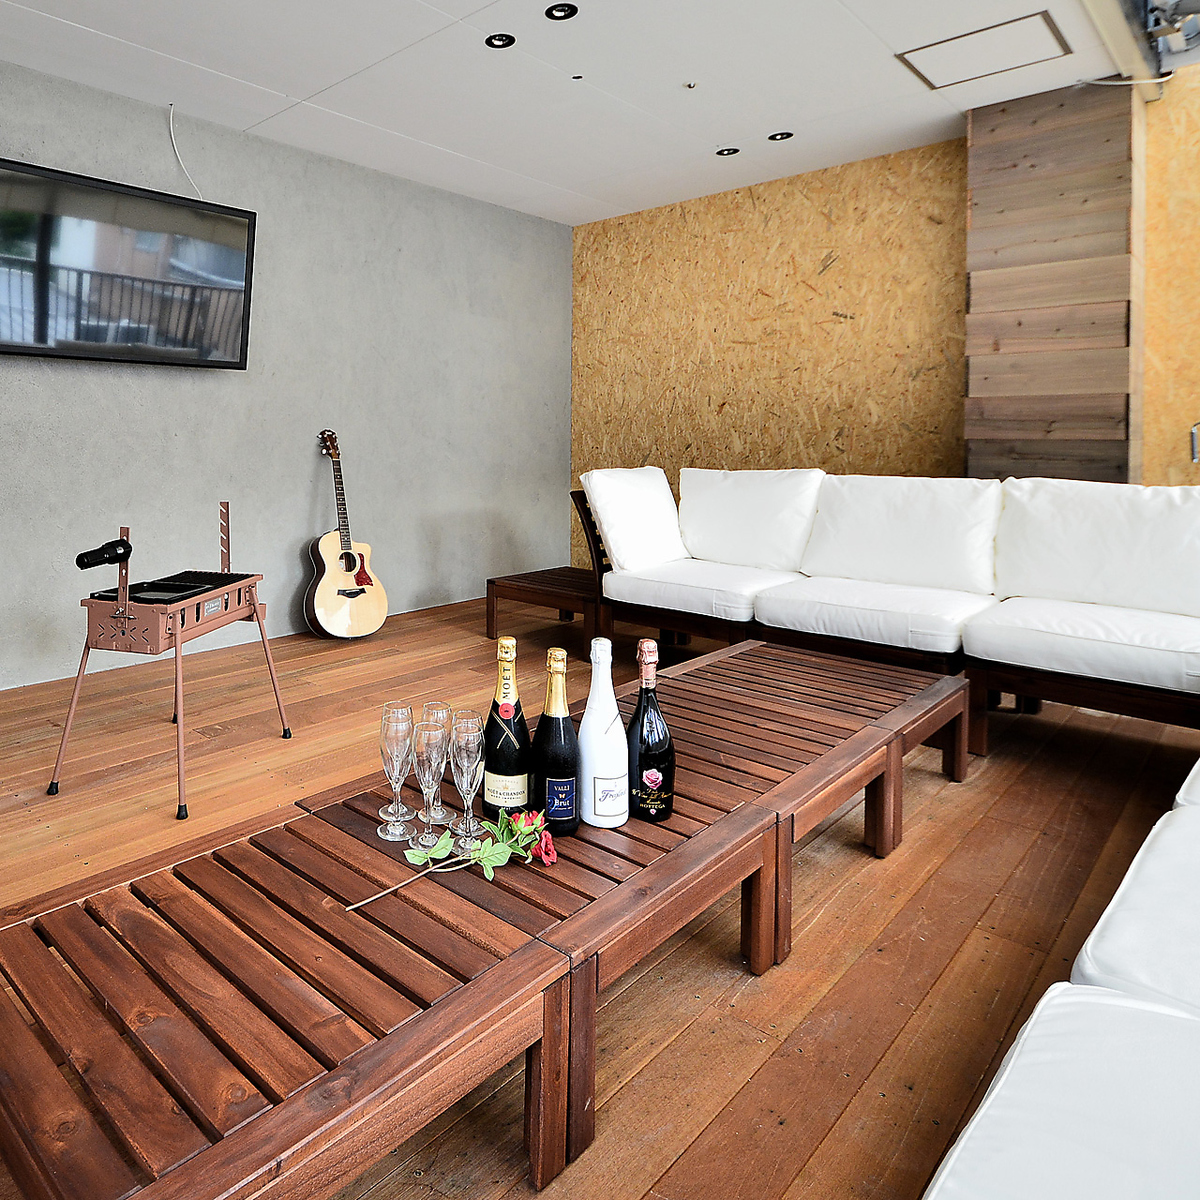 VIP room to relax on relaxing sofa! TV included ※ Separately 5000 yen (tax included) For details, please contact the store.